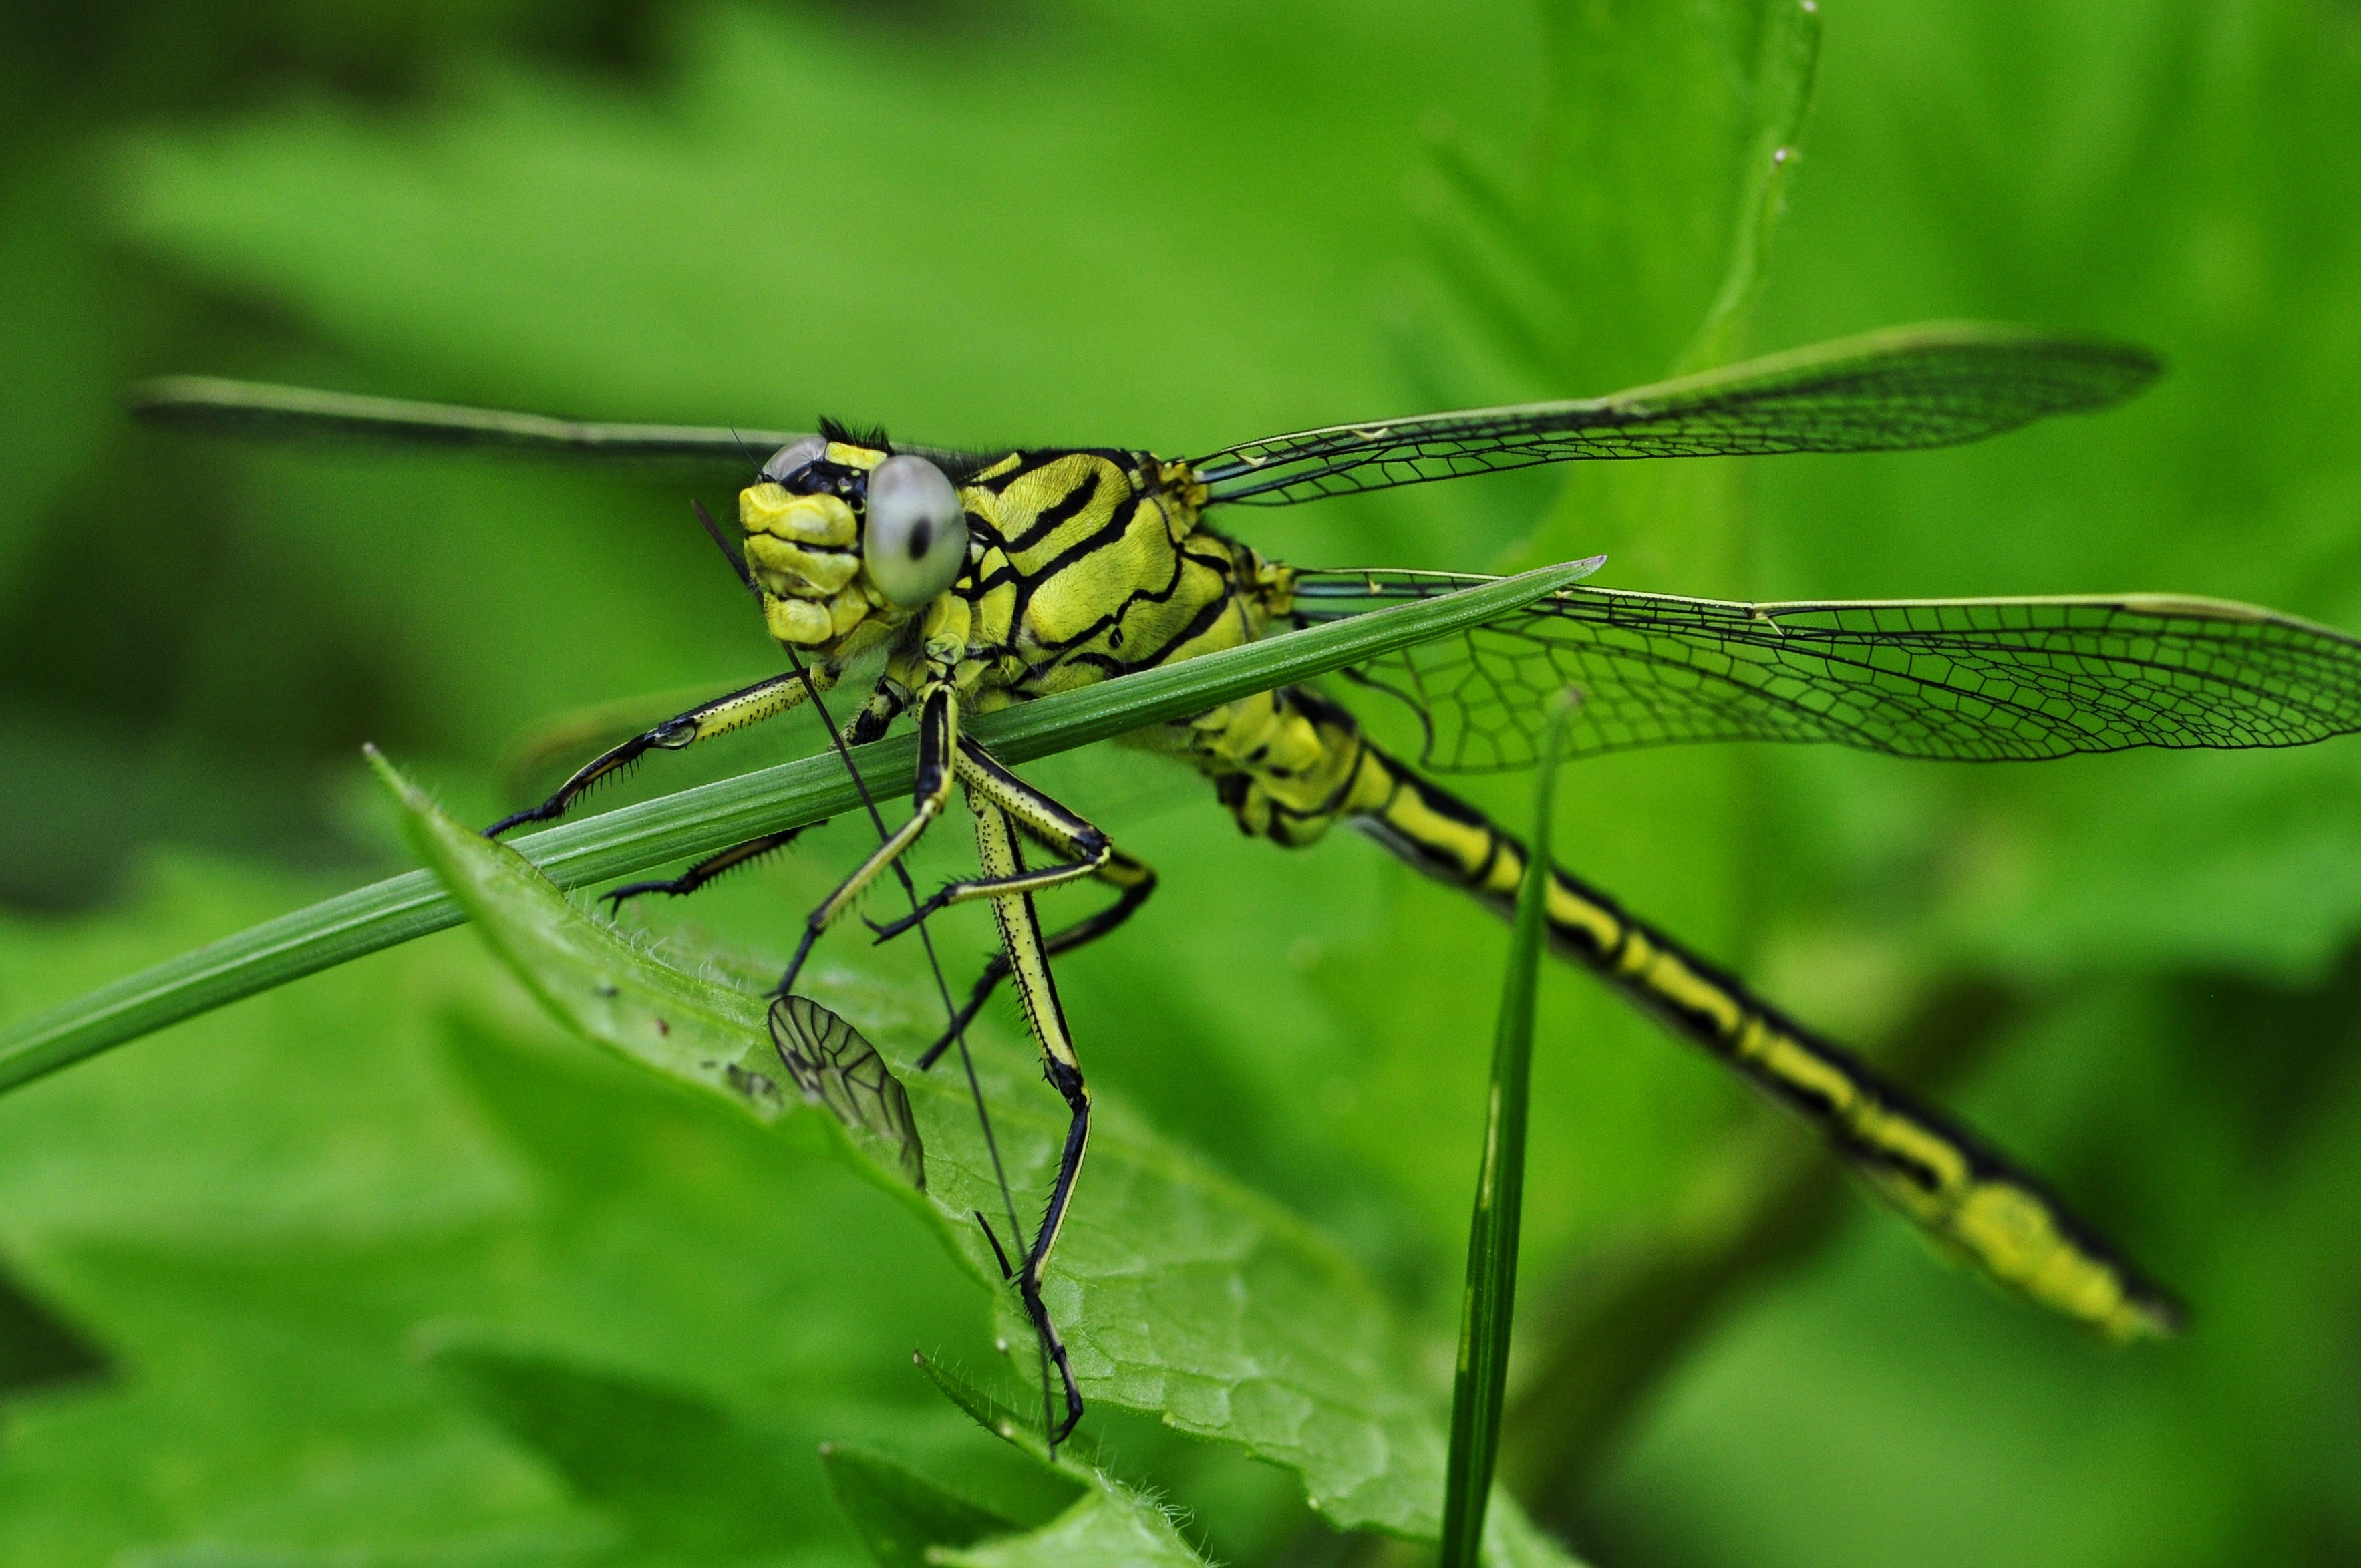 Green and Black Dragonfly on Green Leaf during Daytime